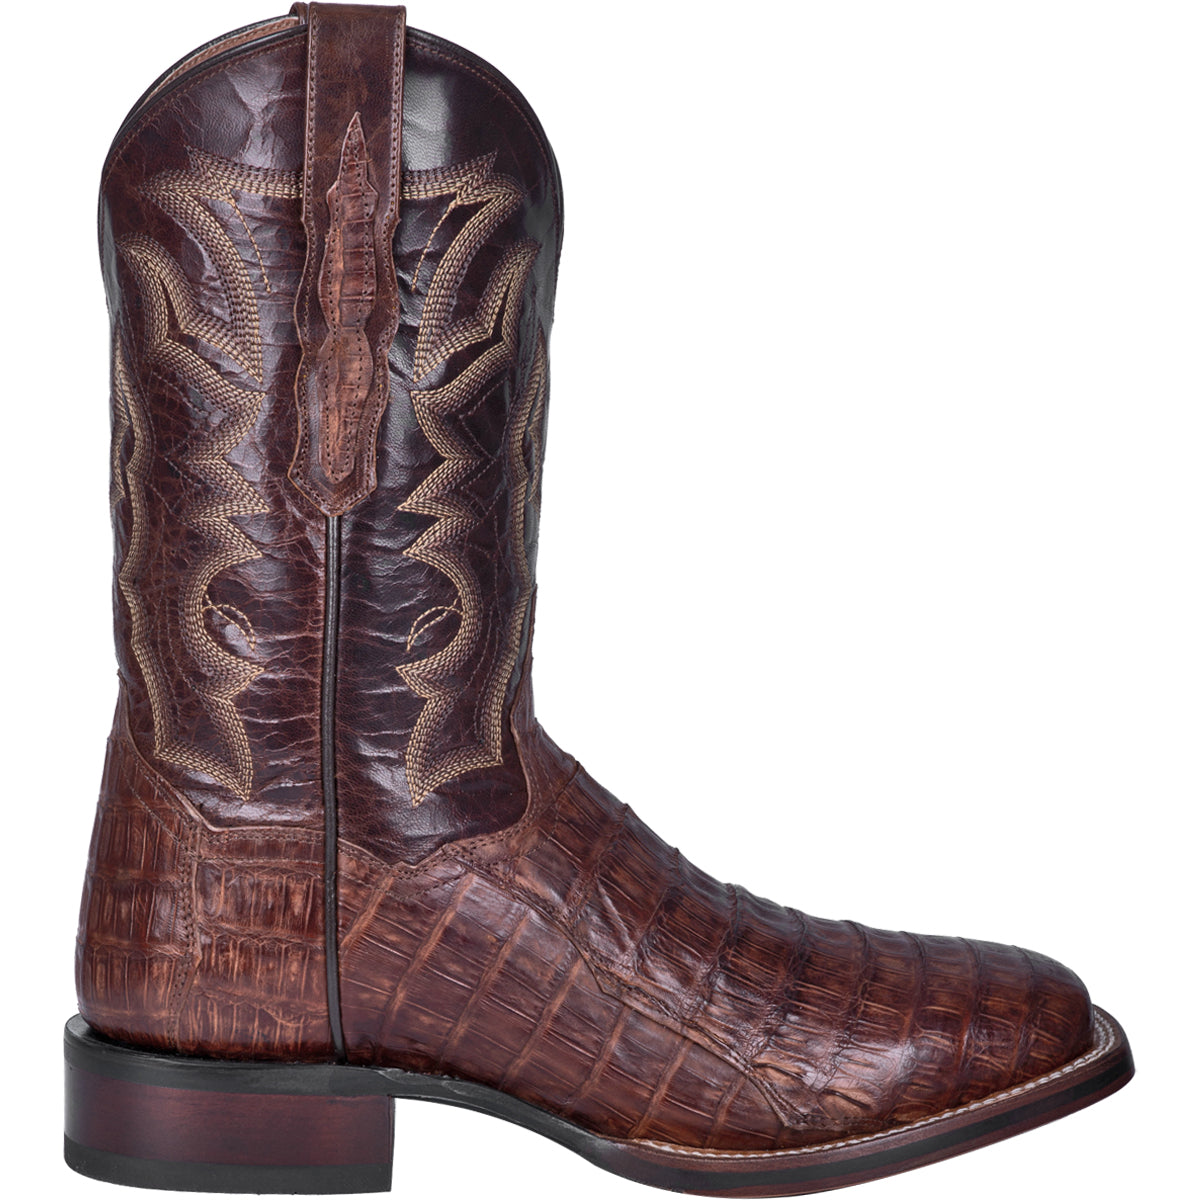 KINGSLY CAIMAN BOOT 12134319063082